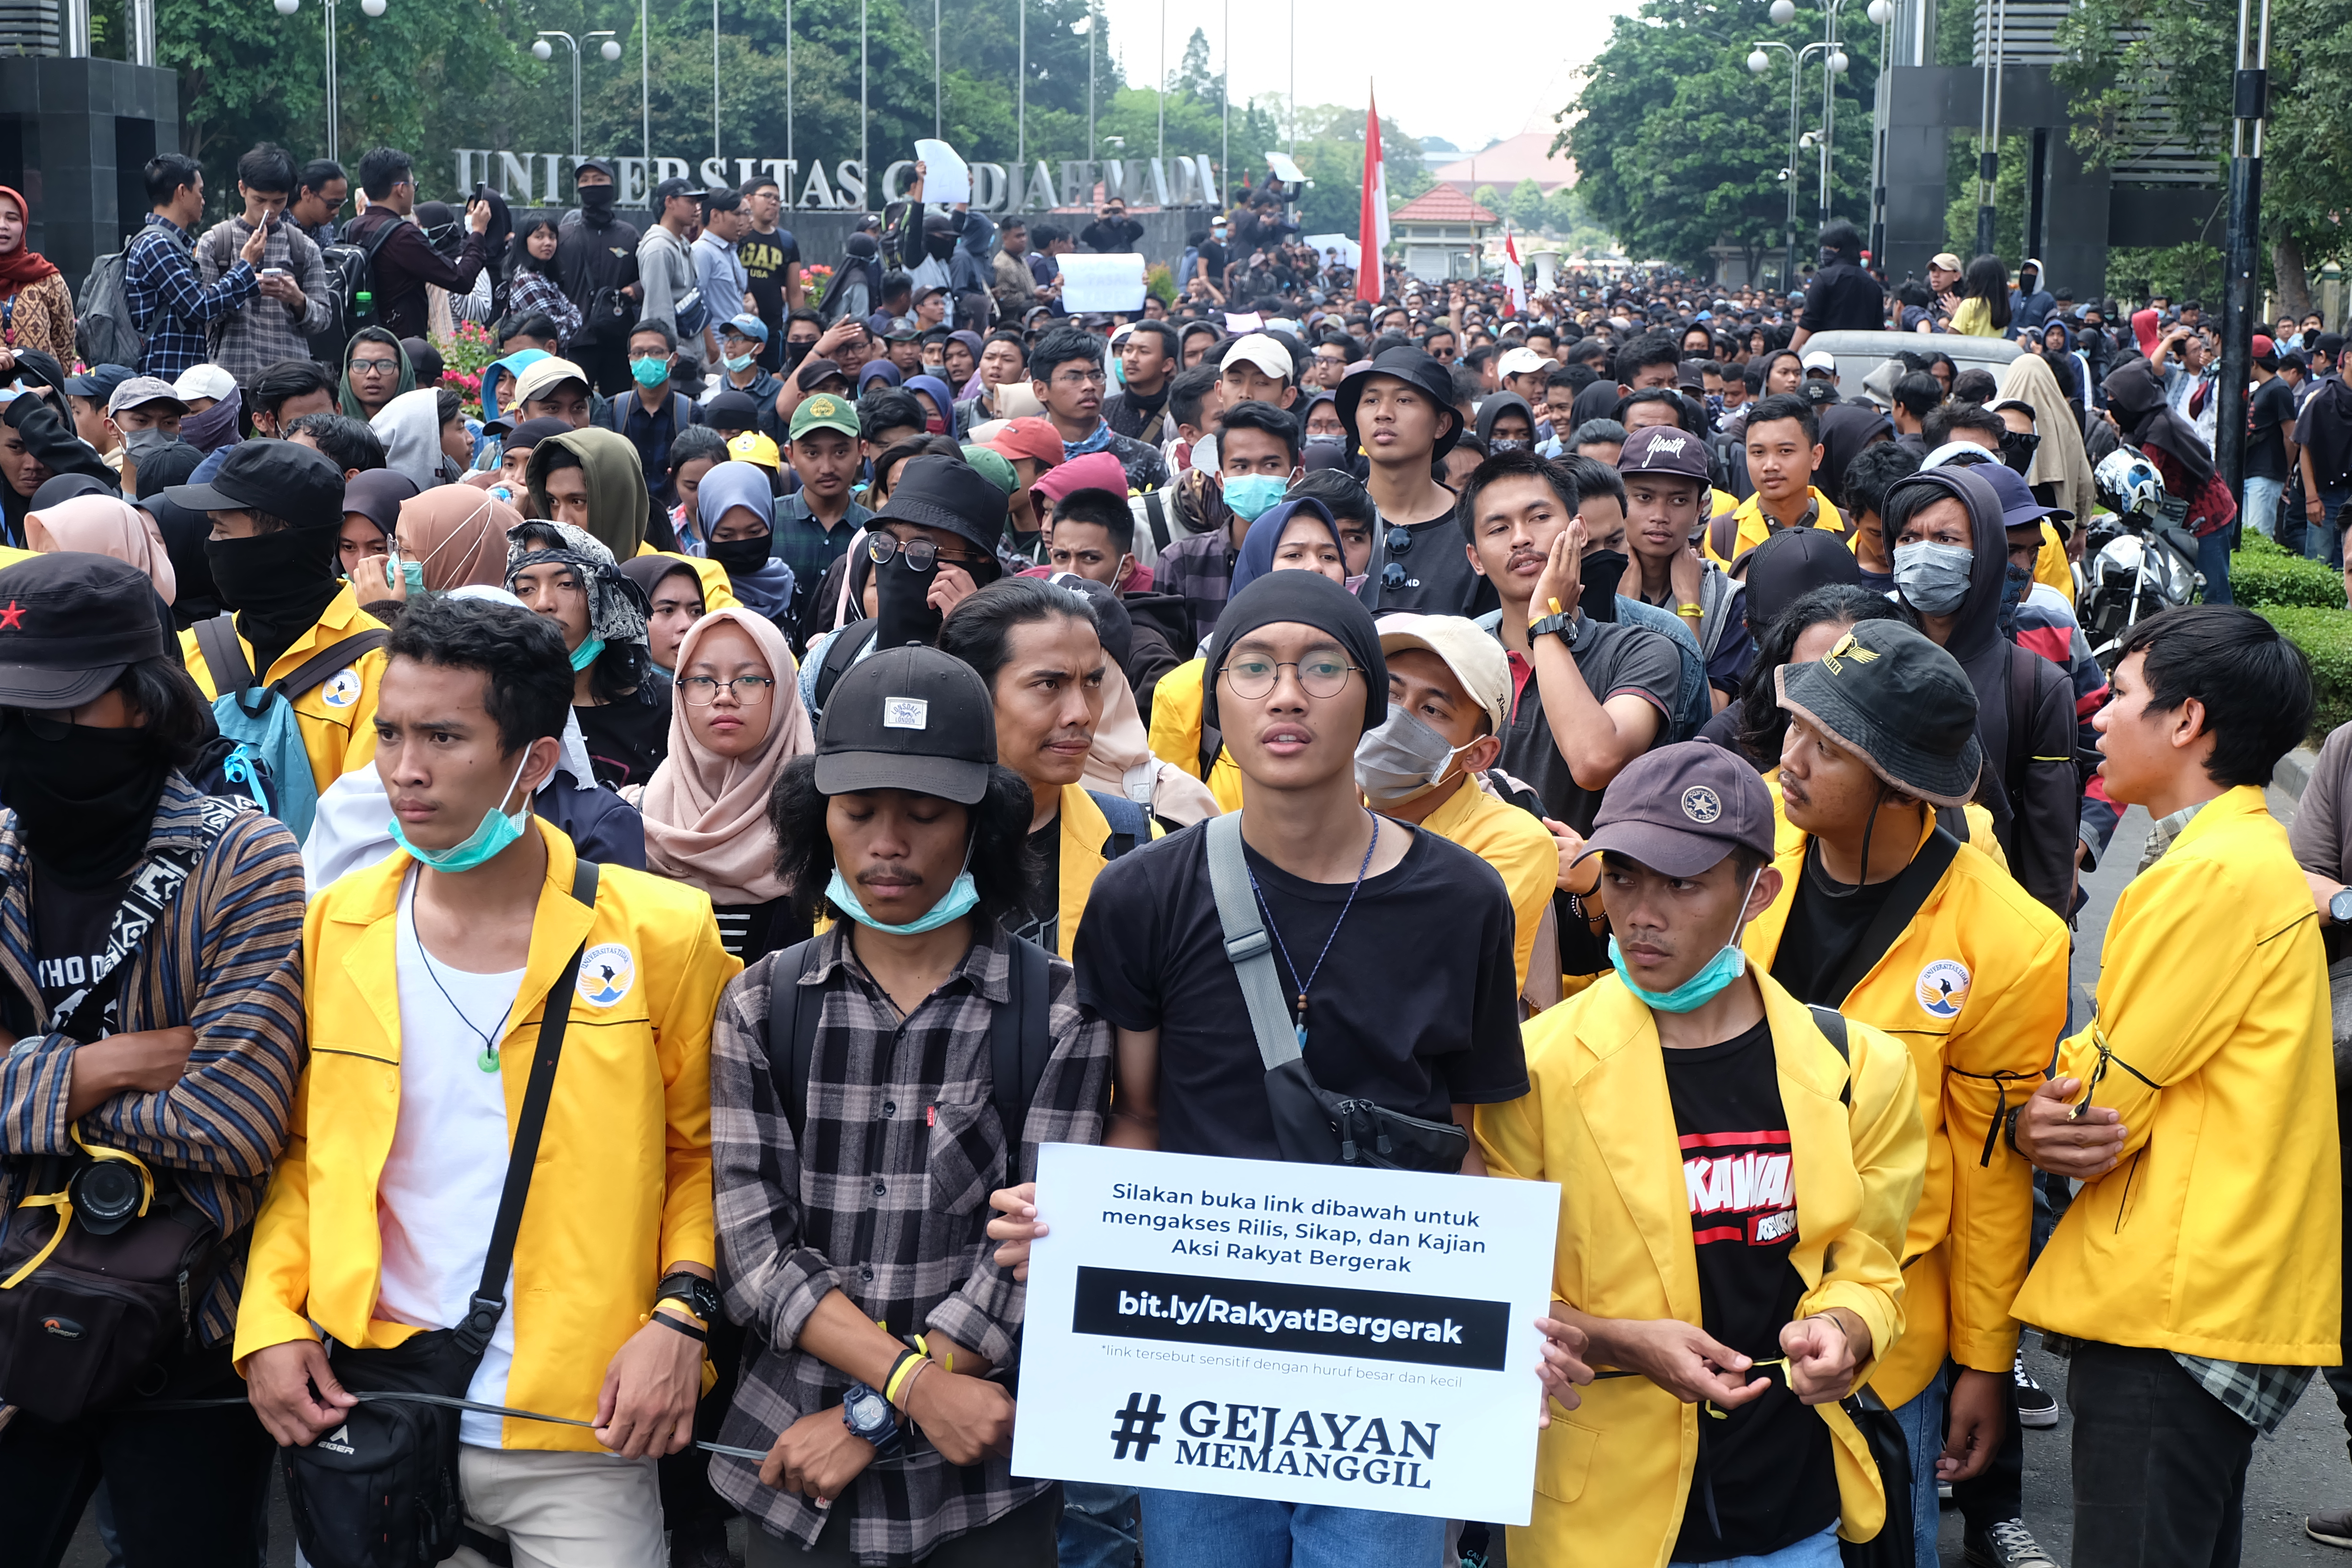 Demonstration of students from various universities who rejected the policies of the government that could cripple democracy in Indonesia. Yogyakarta, Indonesia. 23 September 2019. Editorial credit: Rongaphotography / Shutterstock.com